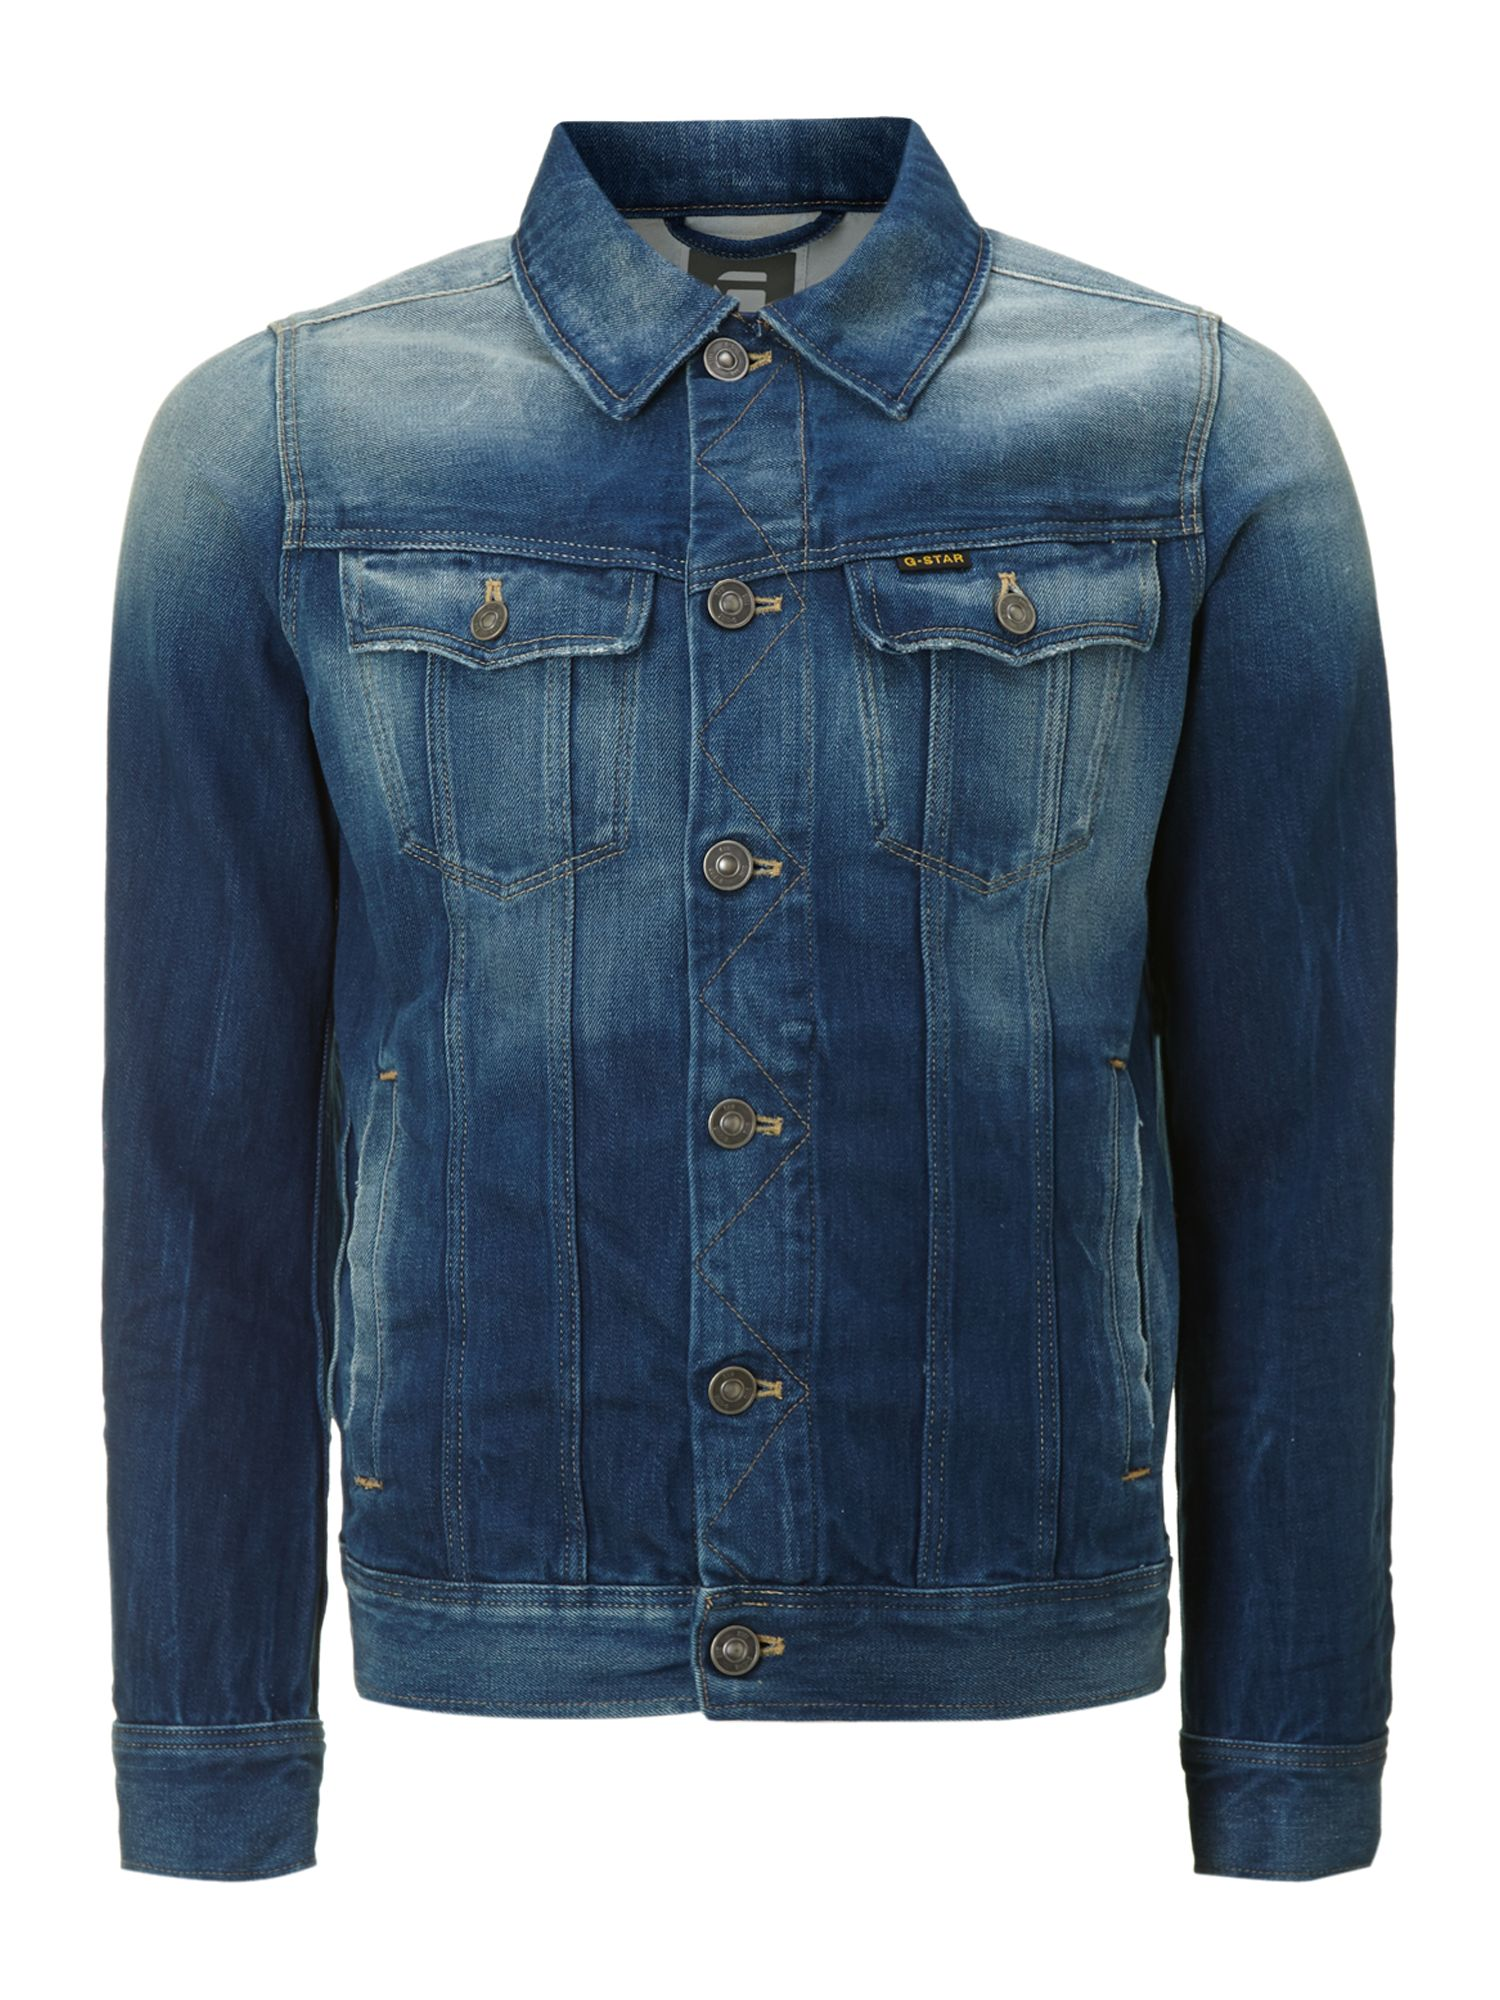 g star raw denim jacket in blue for men lyst. Black Bedroom Furniture Sets. Home Design Ideas